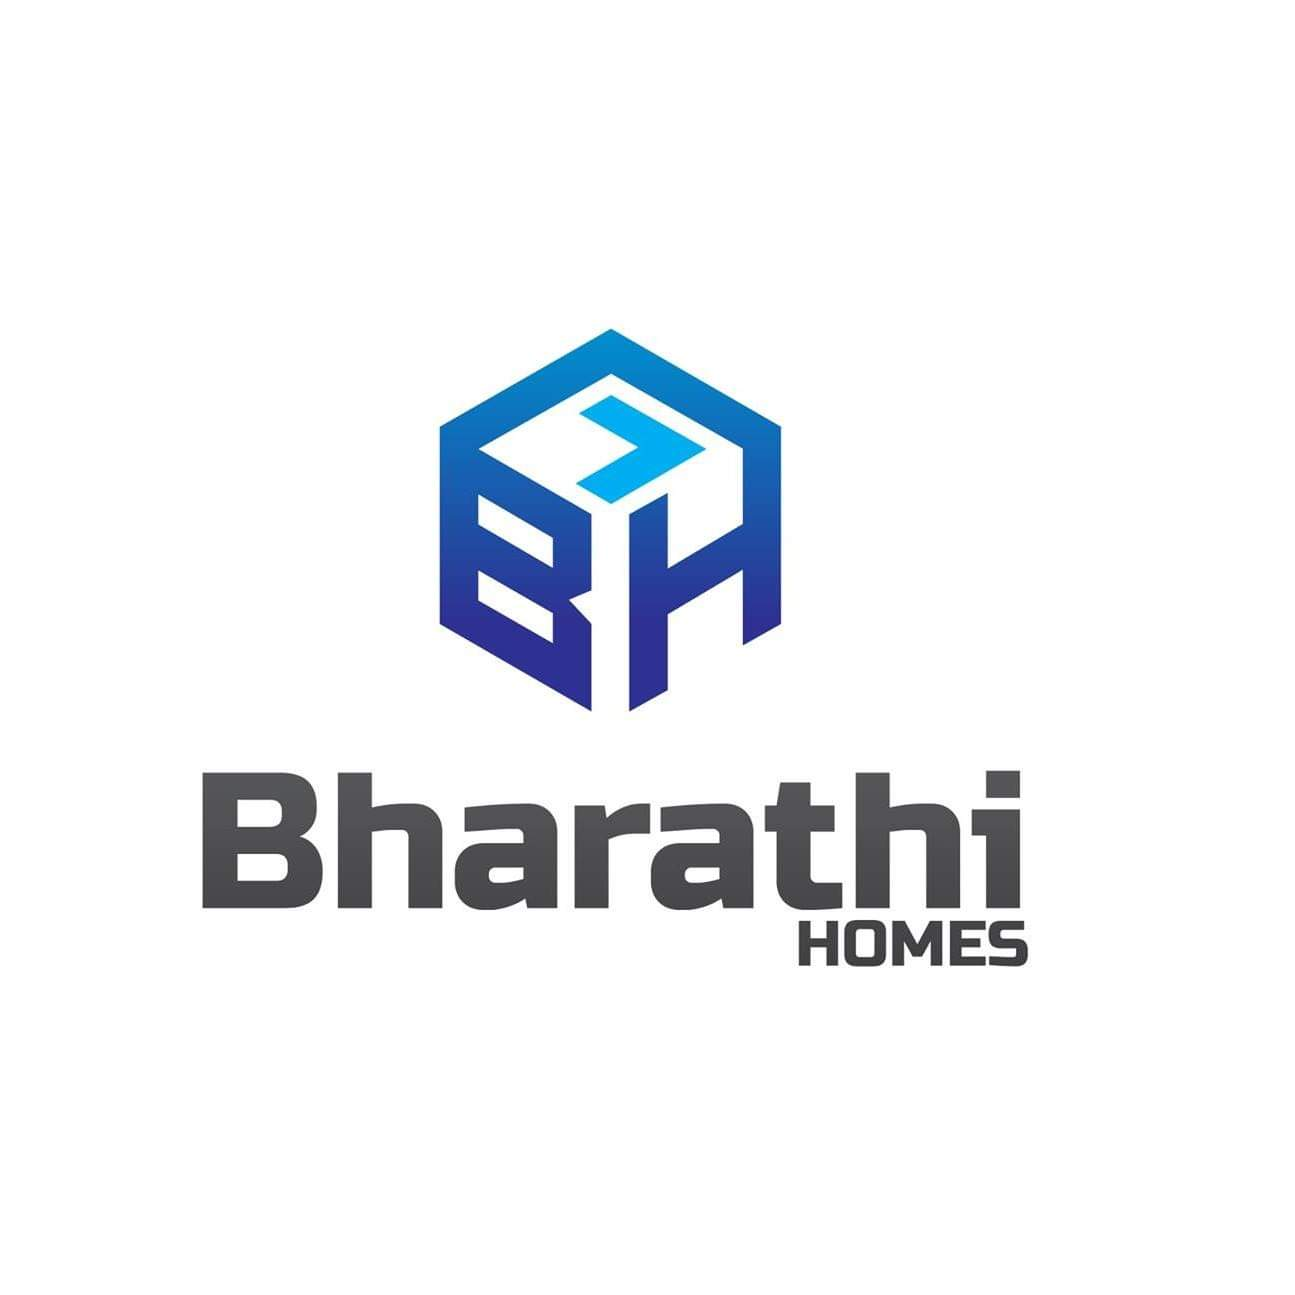 Bharathi Homes